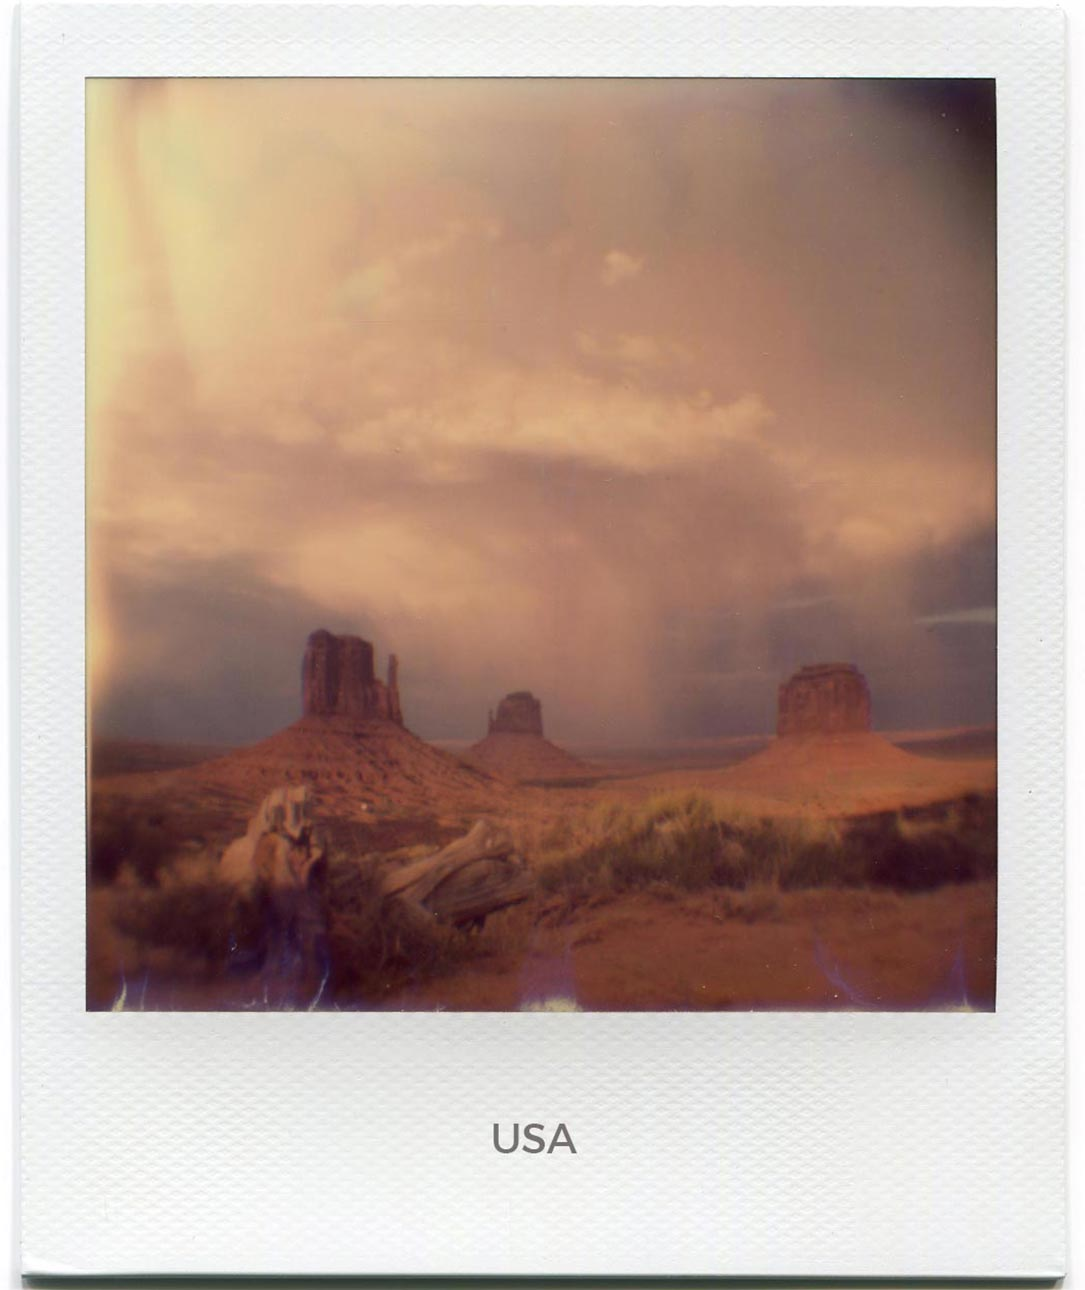 Florent Dudognon usa polaroid